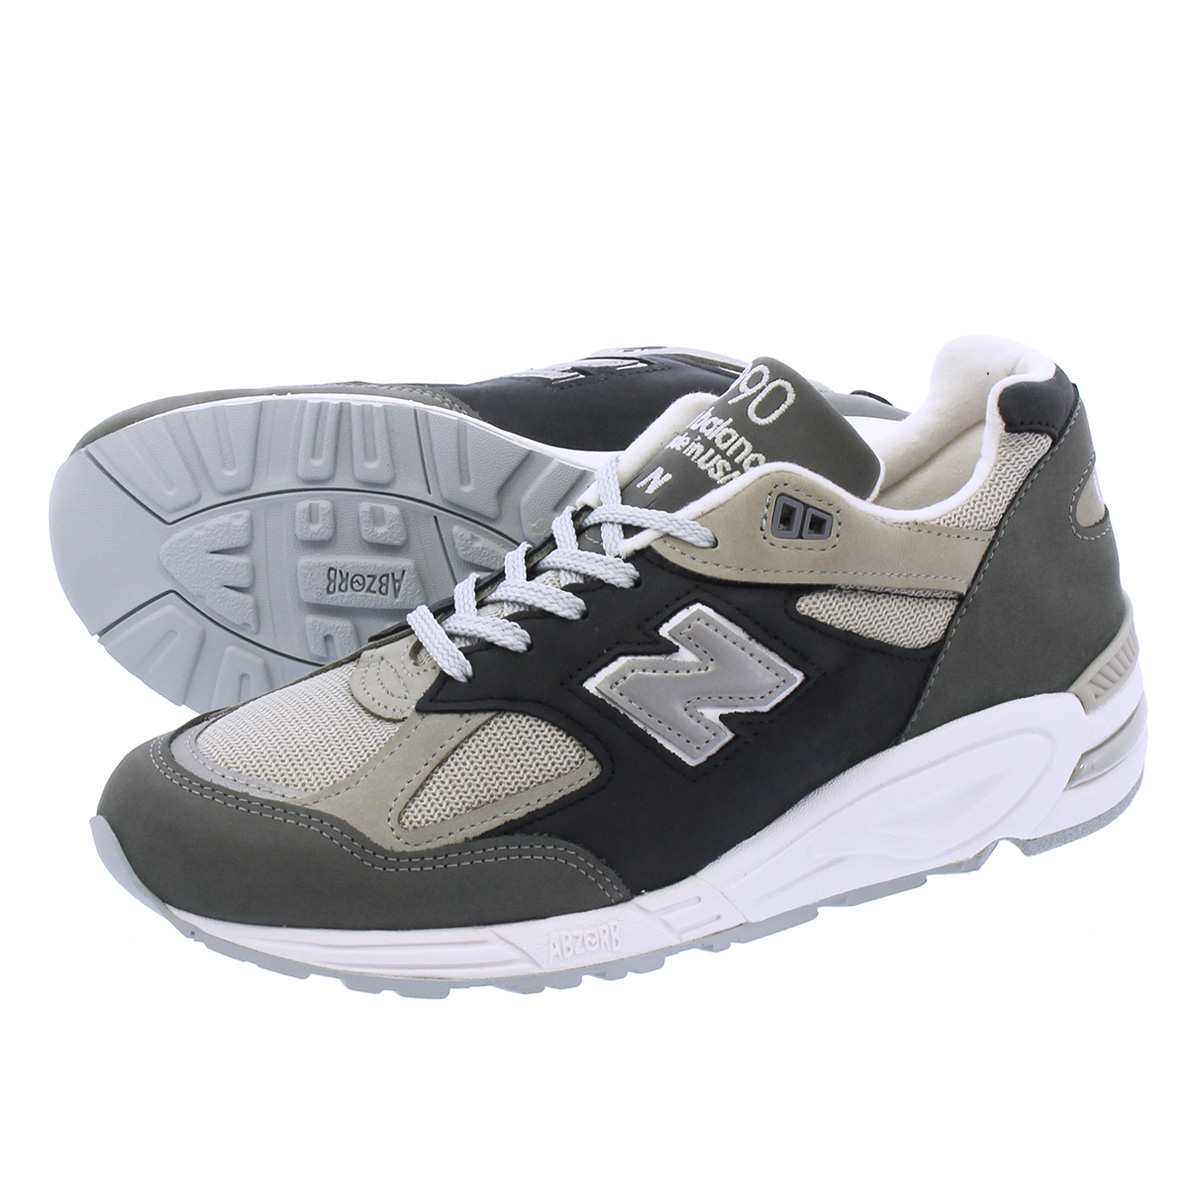 NEW BALANCE M990XG2 【MADE IN U.S.A】 ニューバランス M990XG2 GRAY